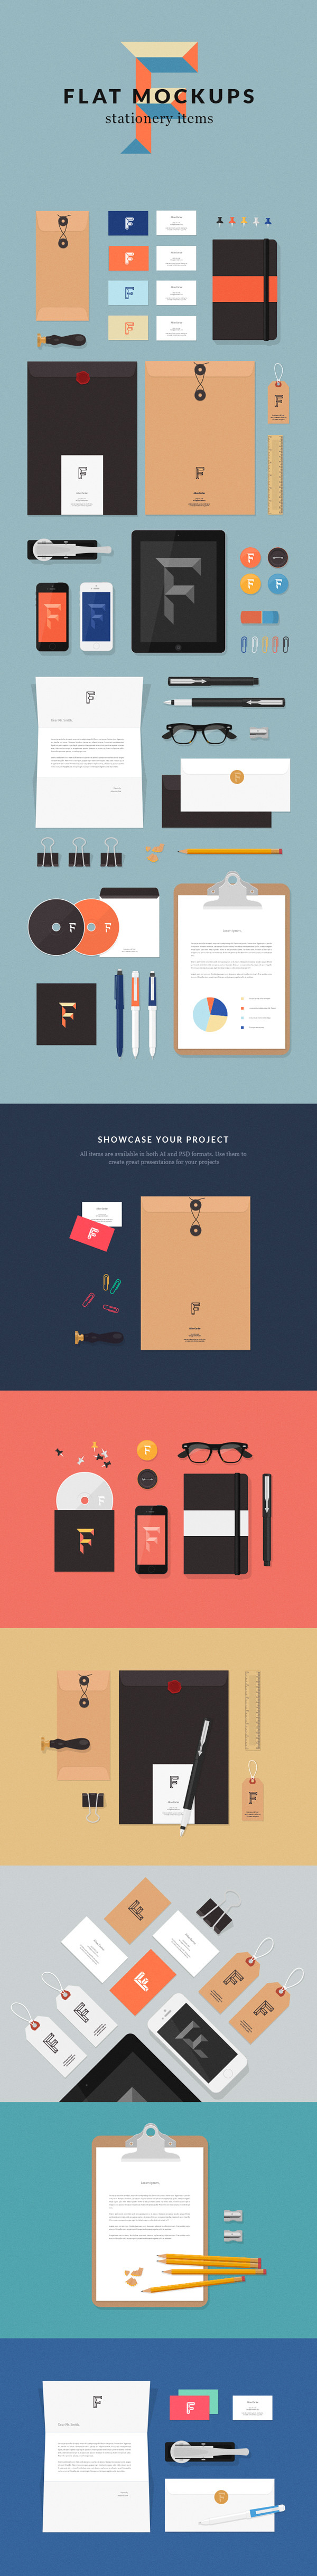 Flat MockUps �C Stationery Items